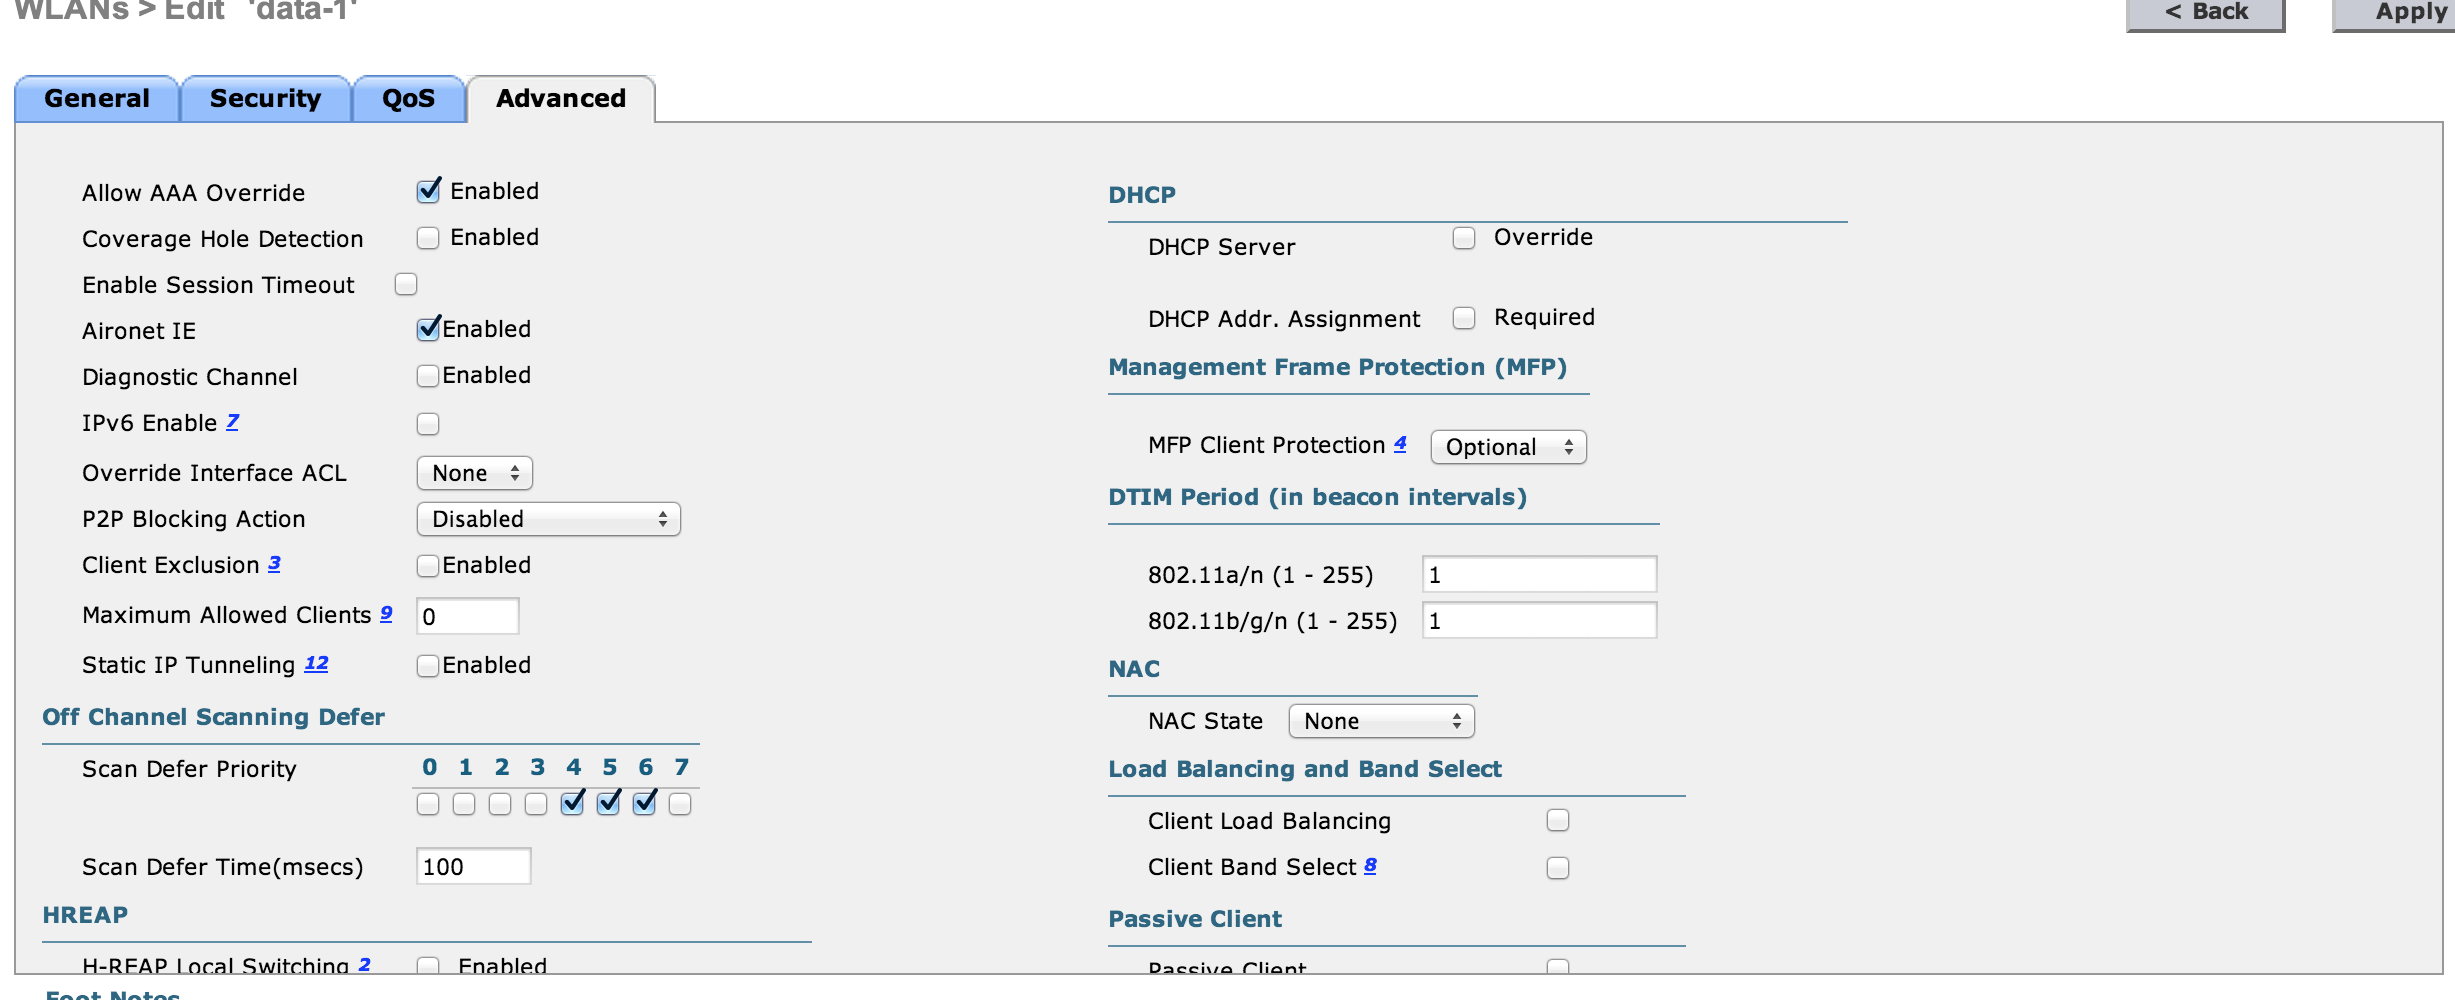 Delineated Wireless Access based on SSID and Protocol - Borderless CCIE